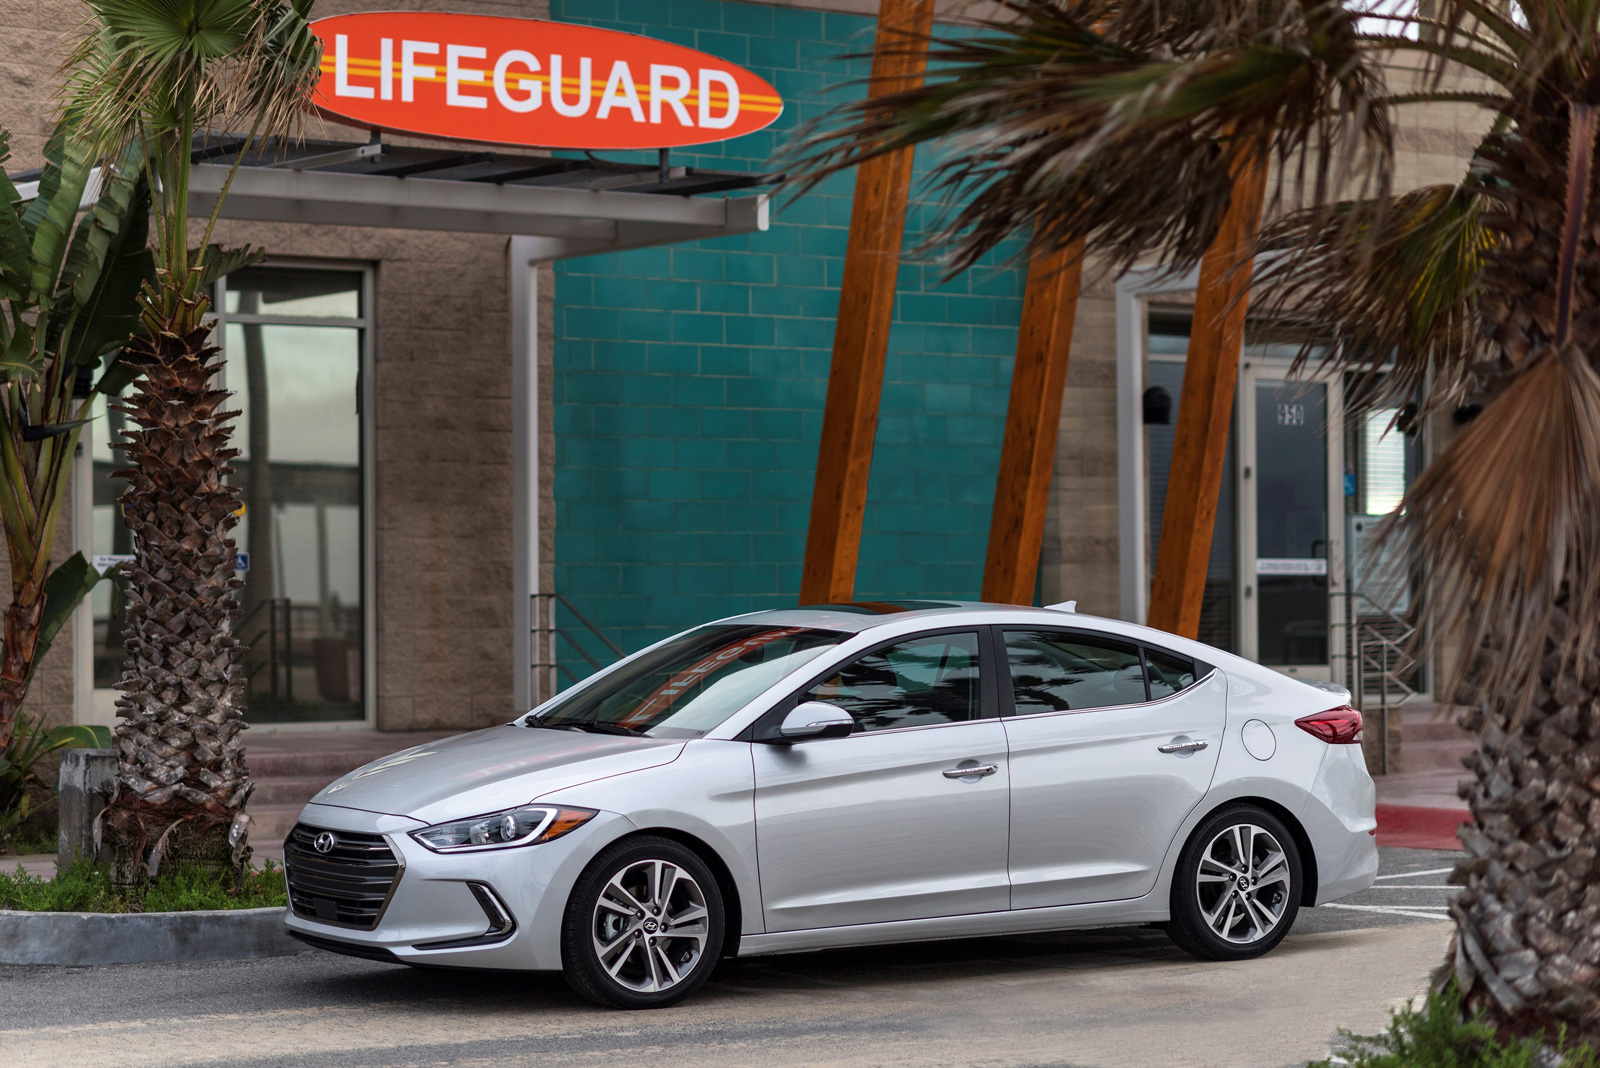 hyundai announces pricing for 2018 elantra lineup news. Black Bedroom Furniture Sets. Home Design Ideas